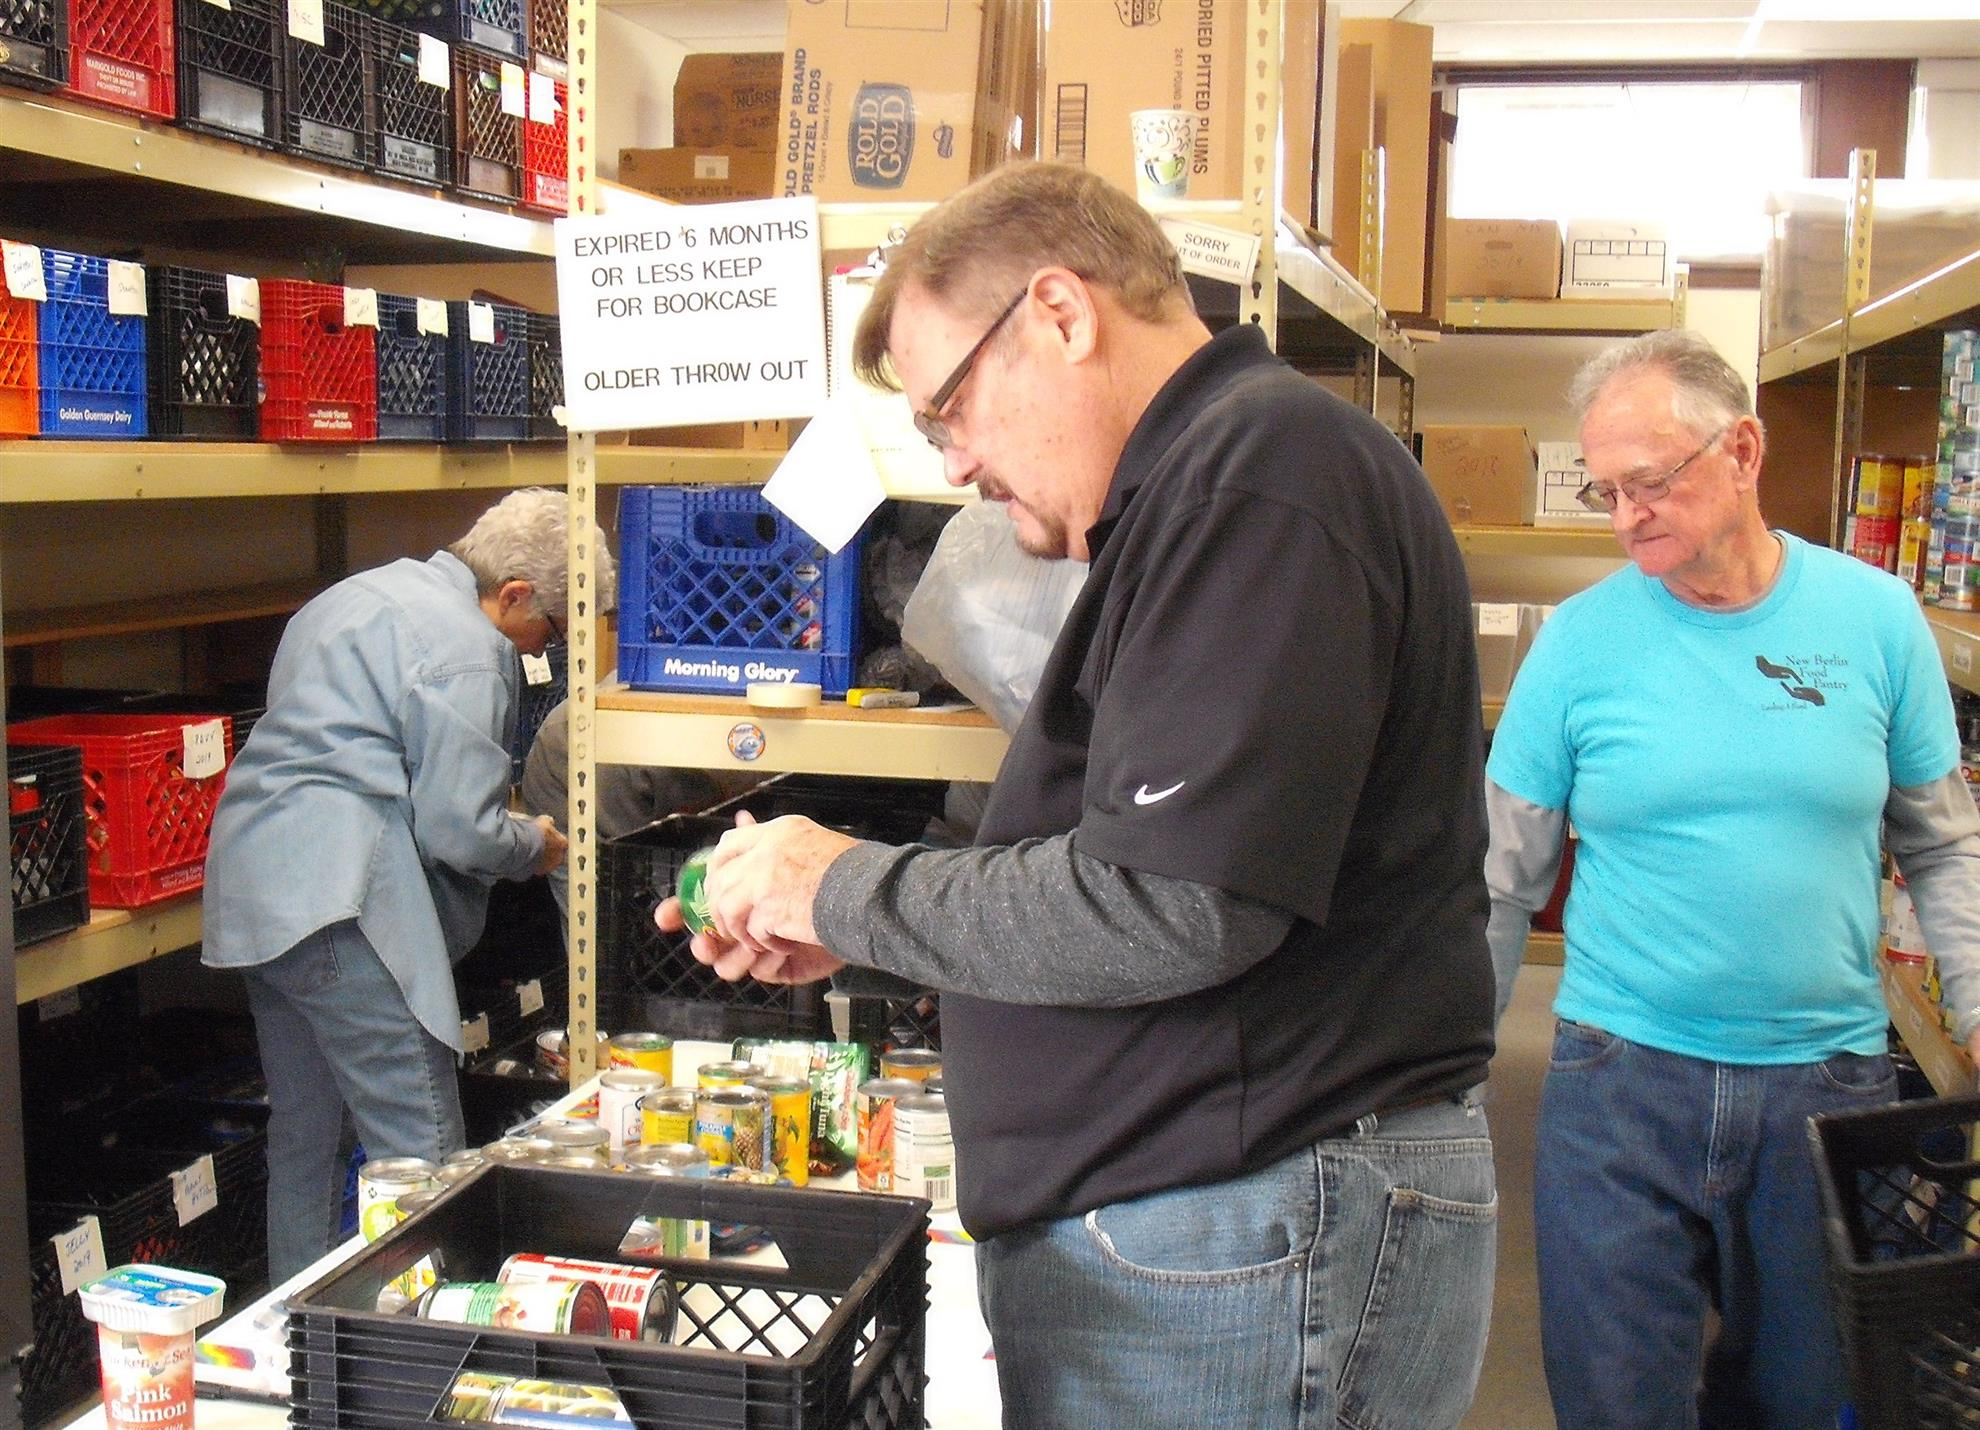 New Berlin Rotary, Rotary Club of New Berlin, New Berlin Food Pantry